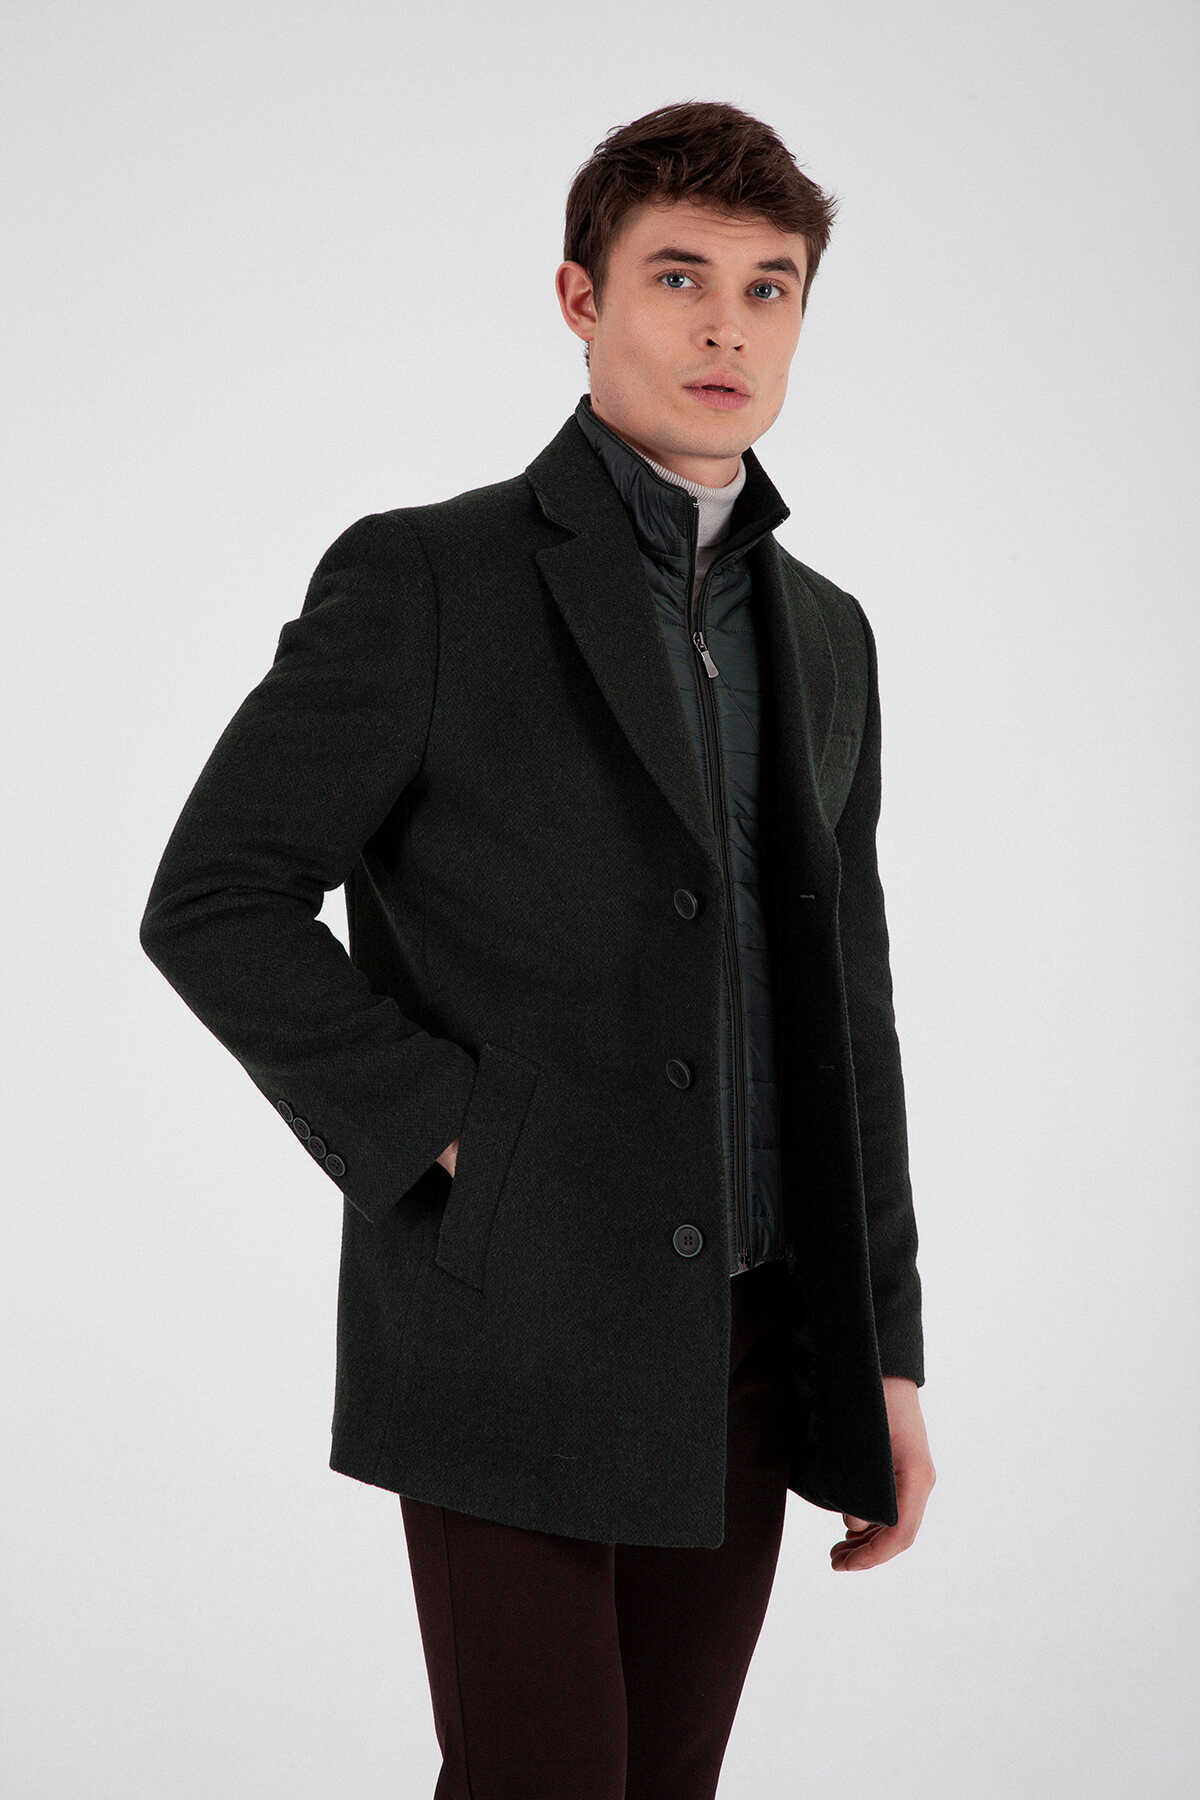 - Green Patterned Slim Fit Coat